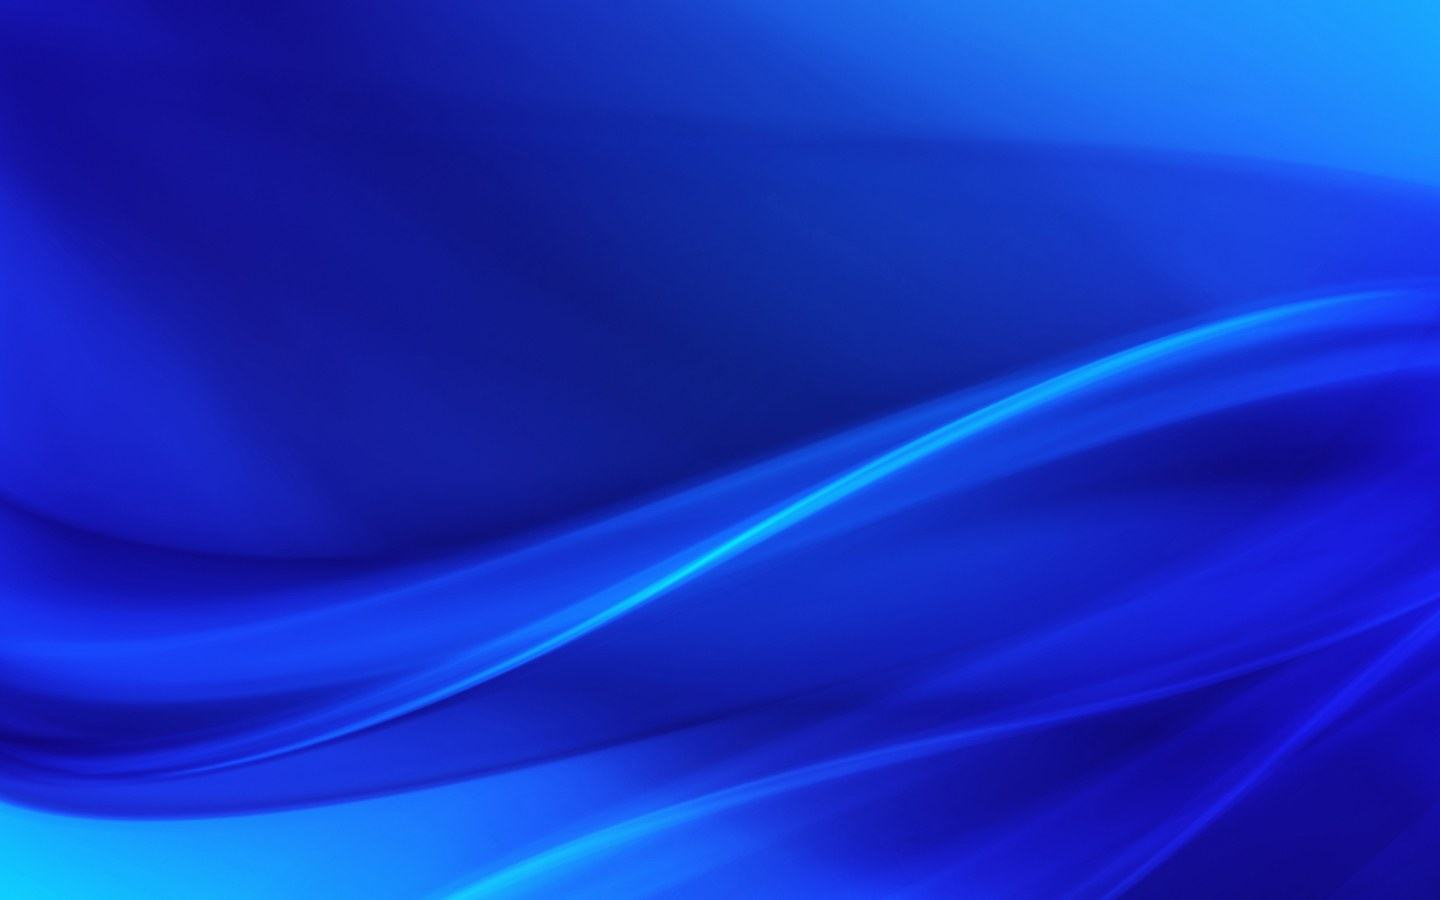 Mac Os X Dark Blue Abstract Wallpaper Wallpaper